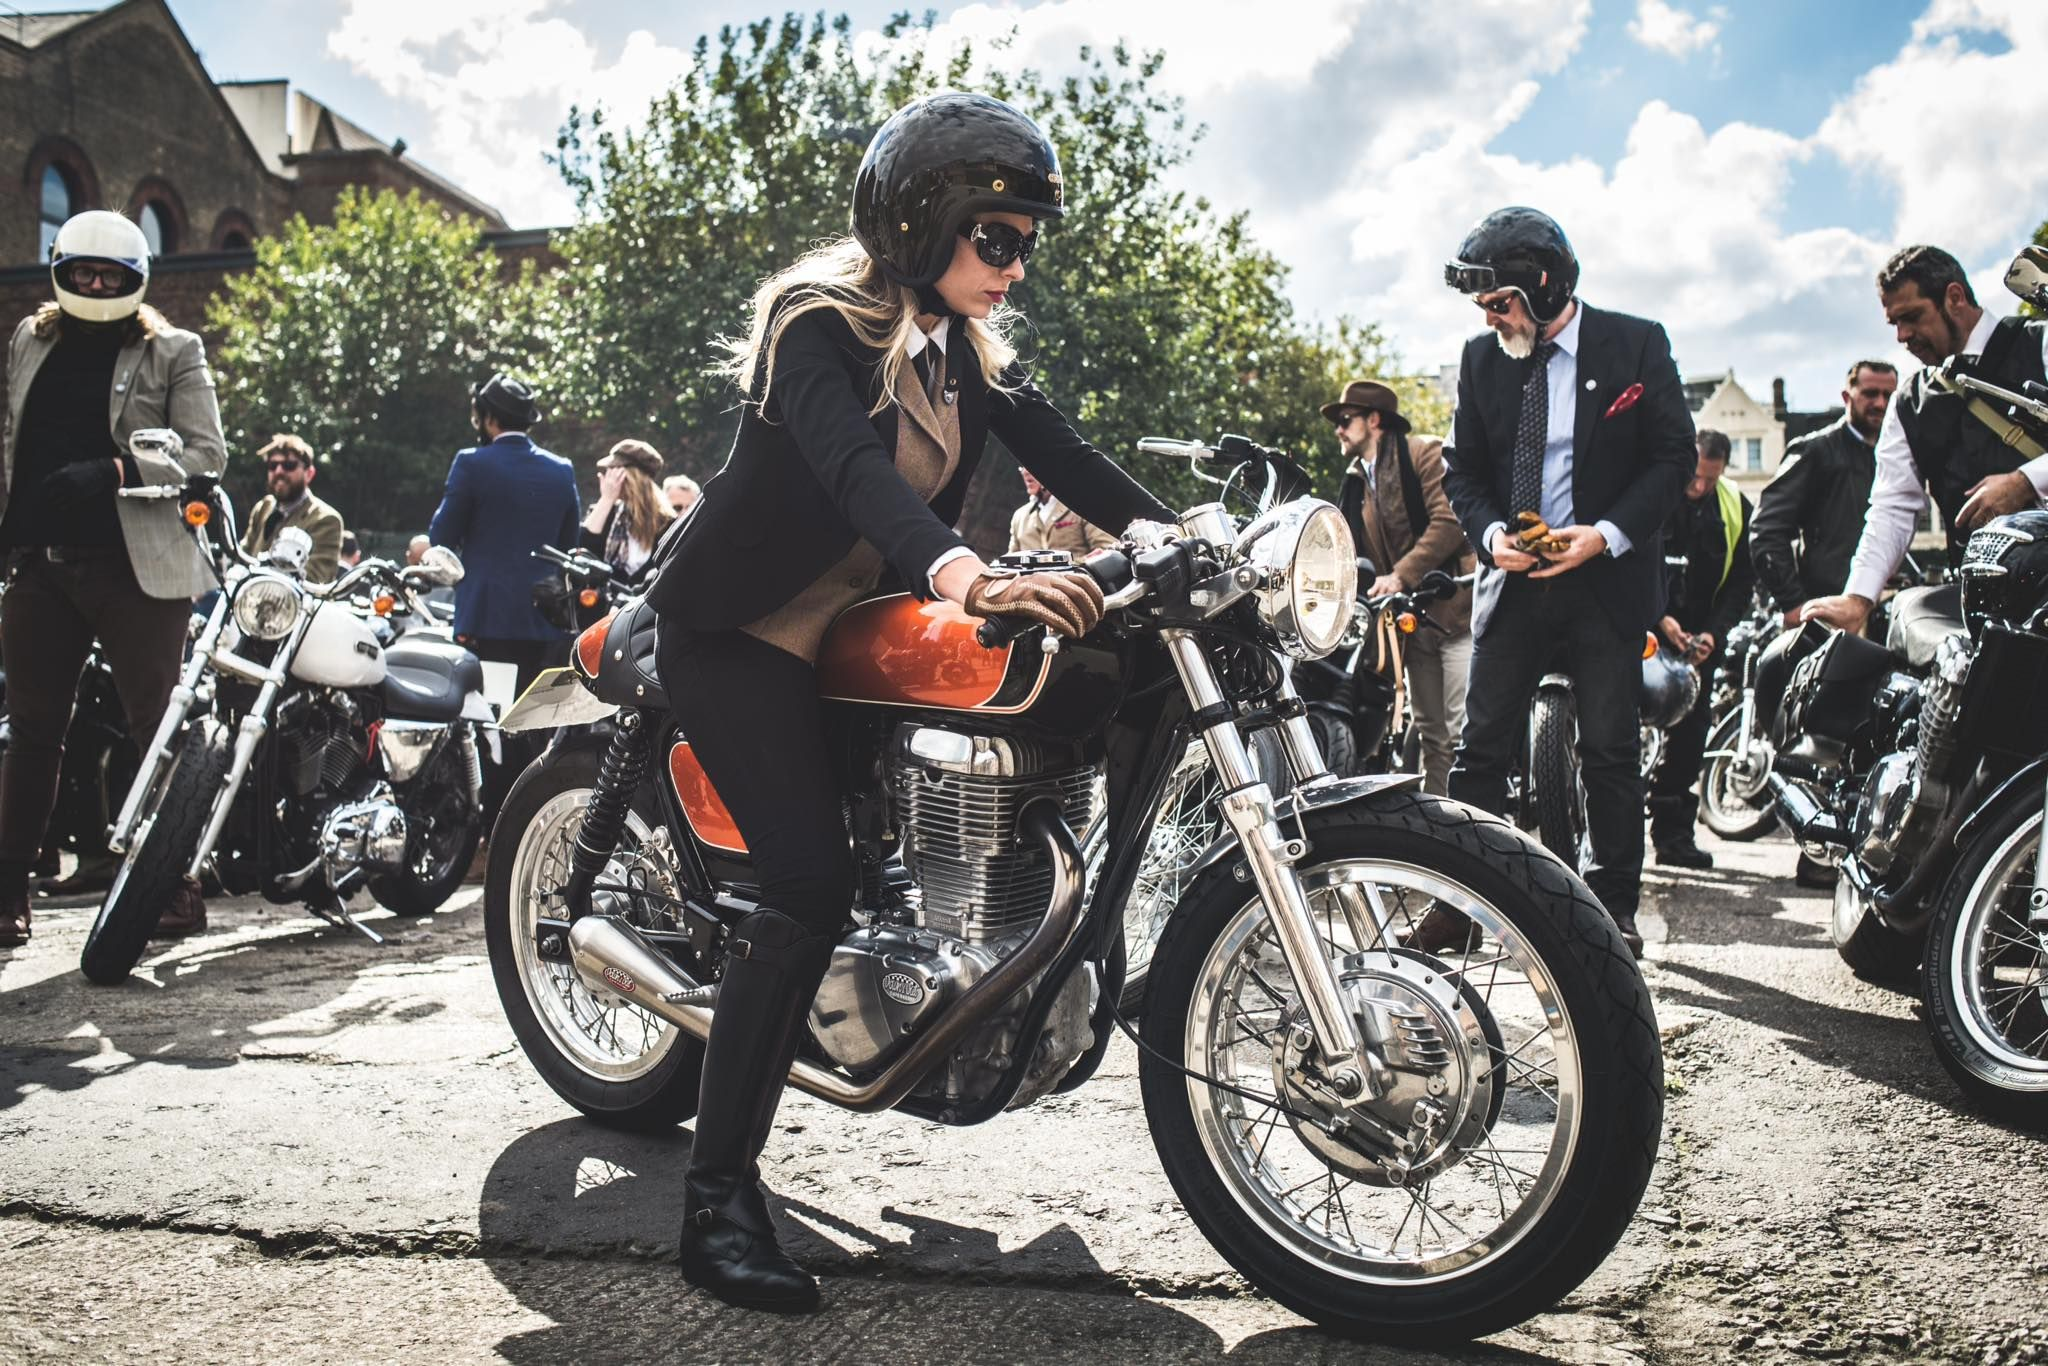 Londons Event Was Graced With This Stunning Suzuki Savage Cafe Racer And Superbly Dapper Rider